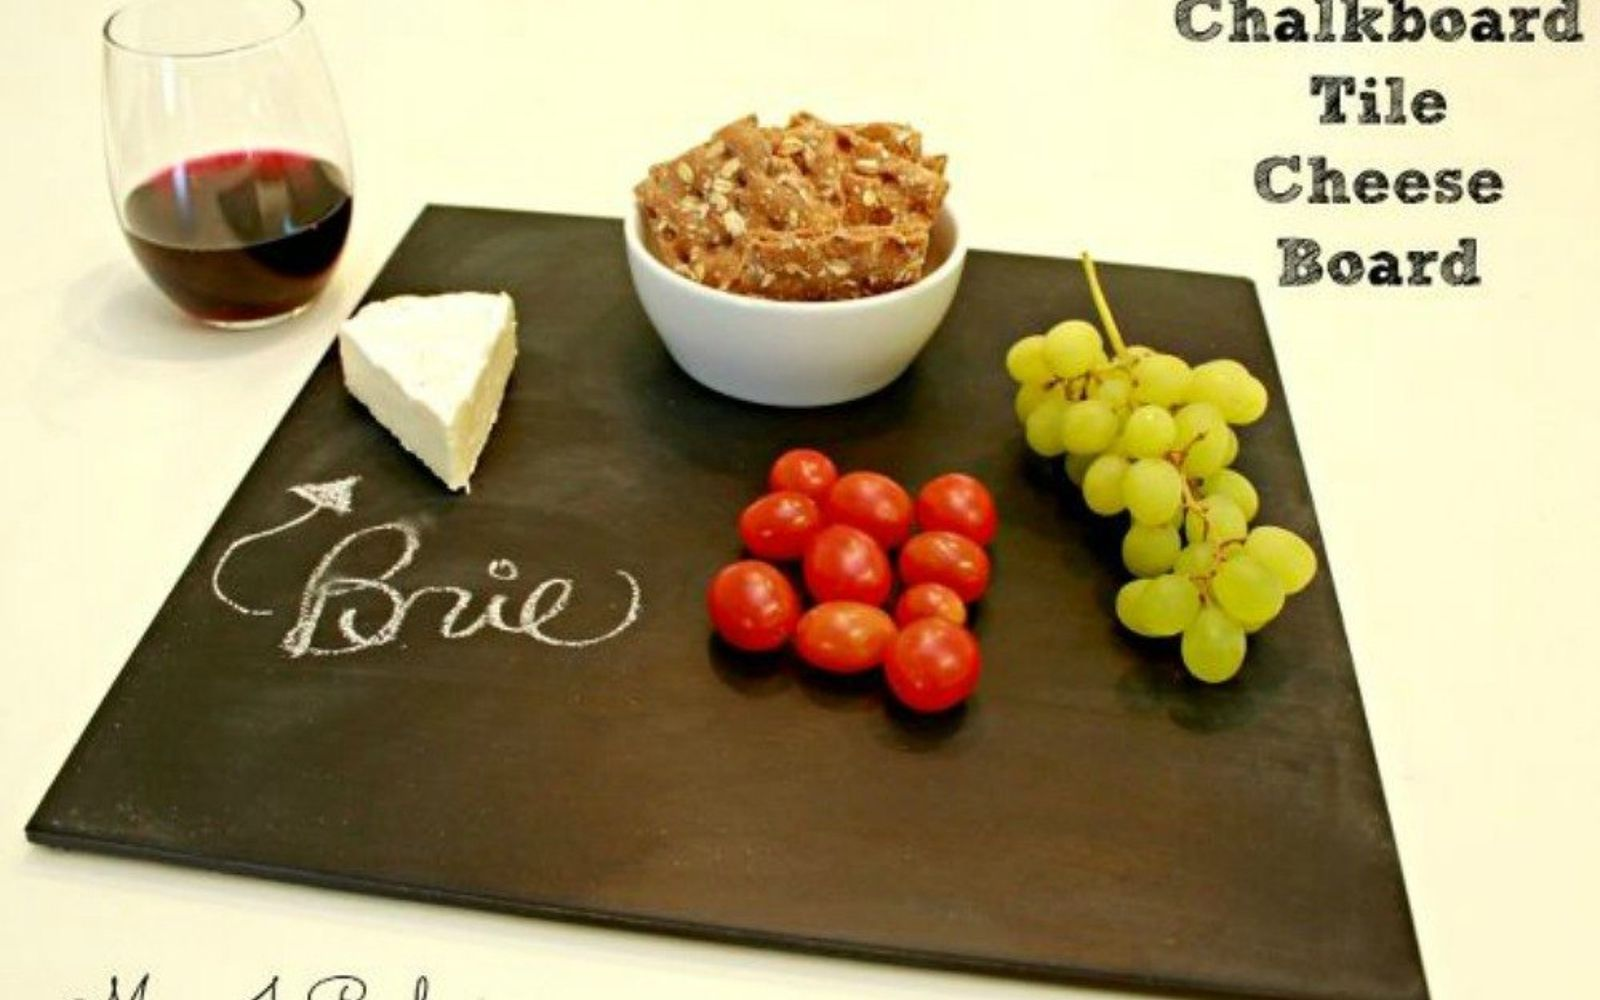 s x ways you never thought of using tile in your home, home decor, As a classy cheese board in your kitchen